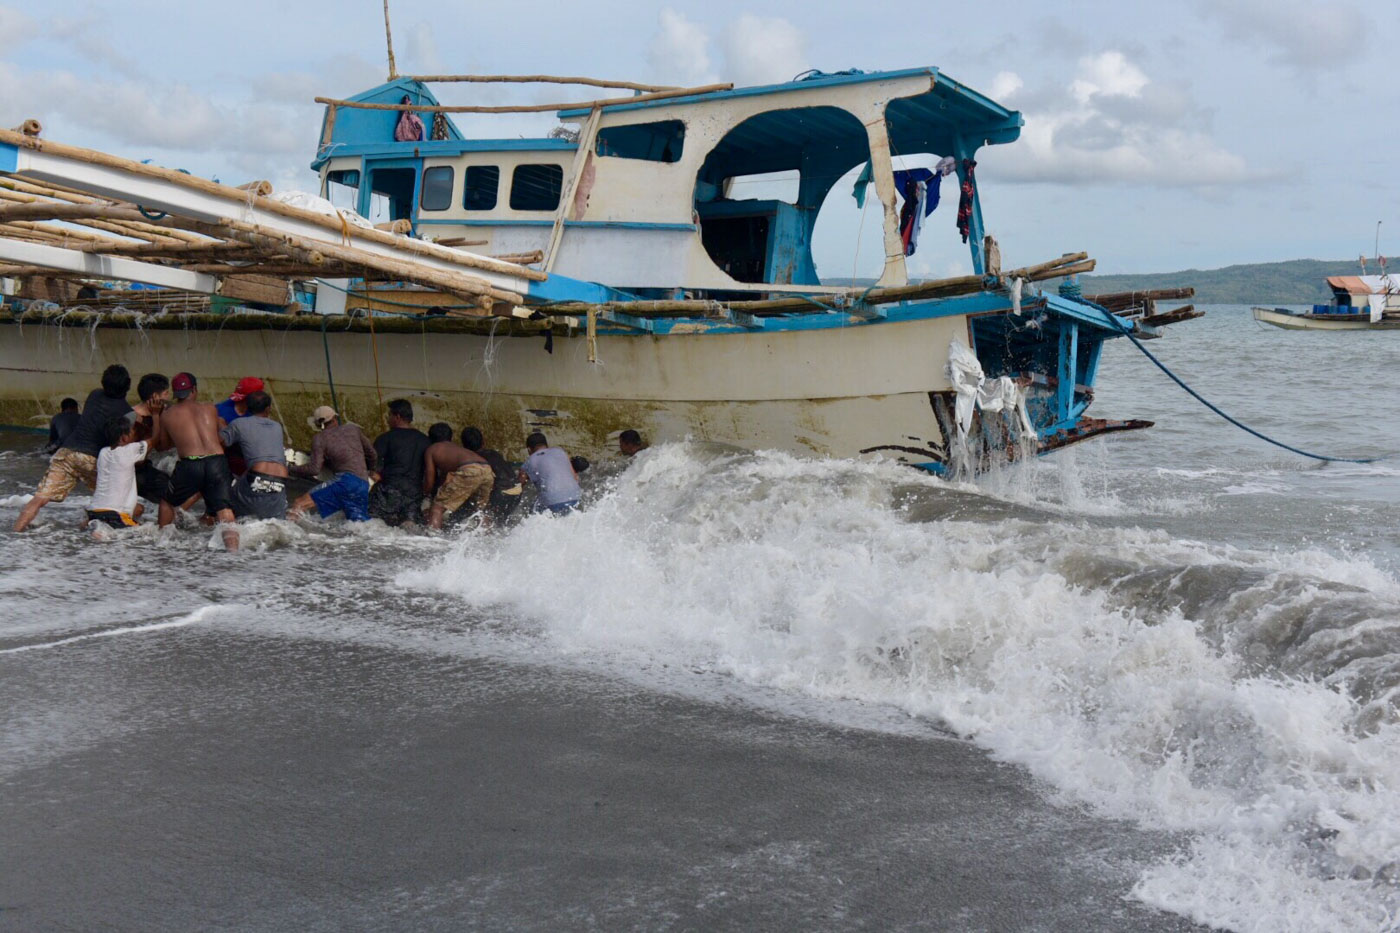 Fishermen pull the F/B Gem-Ver, the Filipino boat sunken by a Chinese vessel near Reed Bank, towards the shore of Barangay San Roque, San Jose, Occidental Mindoro on June 15, 2019.